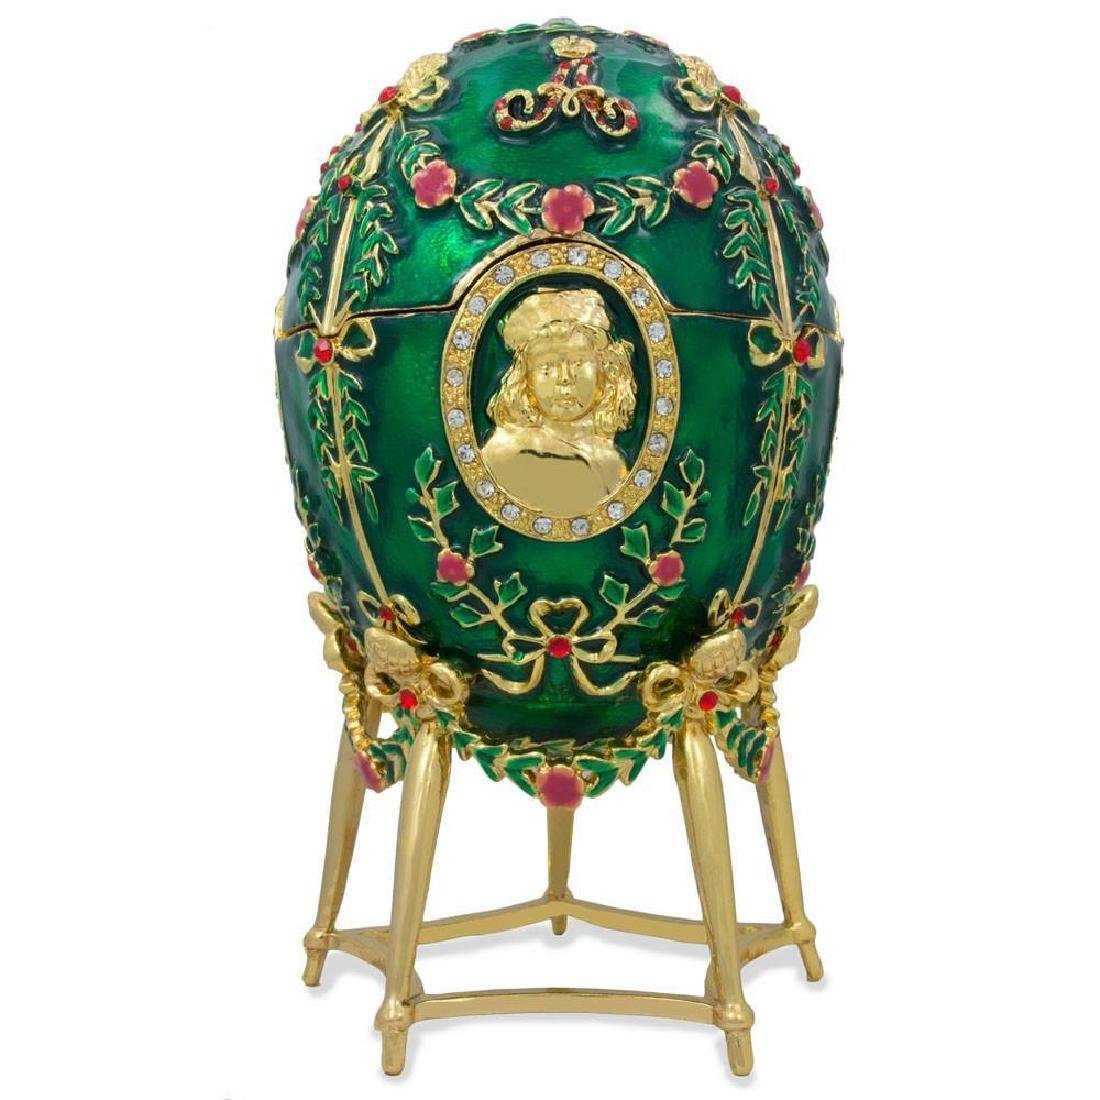 Faberge Inspired 1908 Alexander Palace Faberge Egg - 3